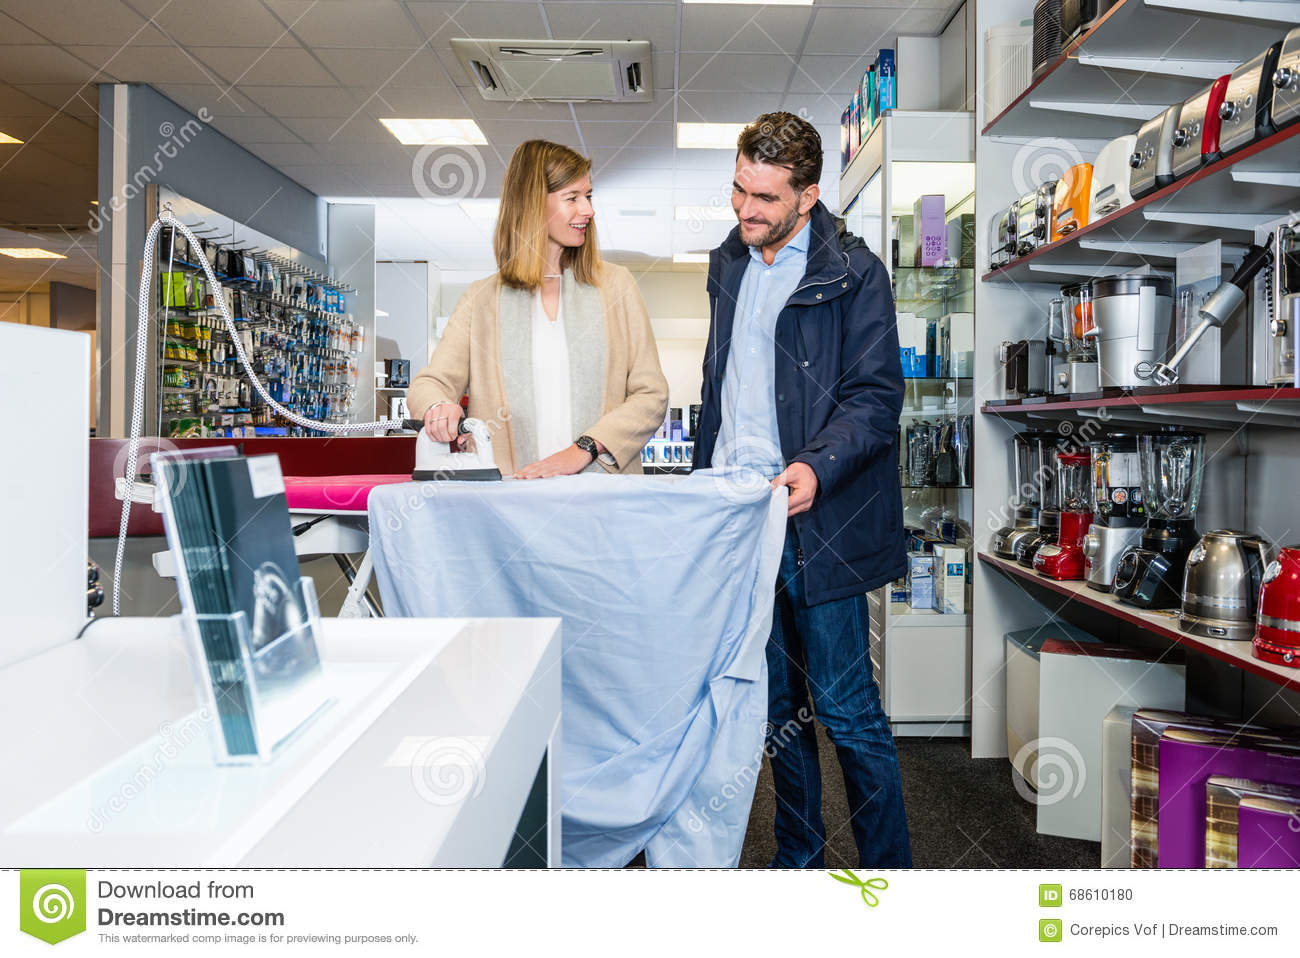 Happy Couple Testing Iron By Ironing Shirt In Hypermarket